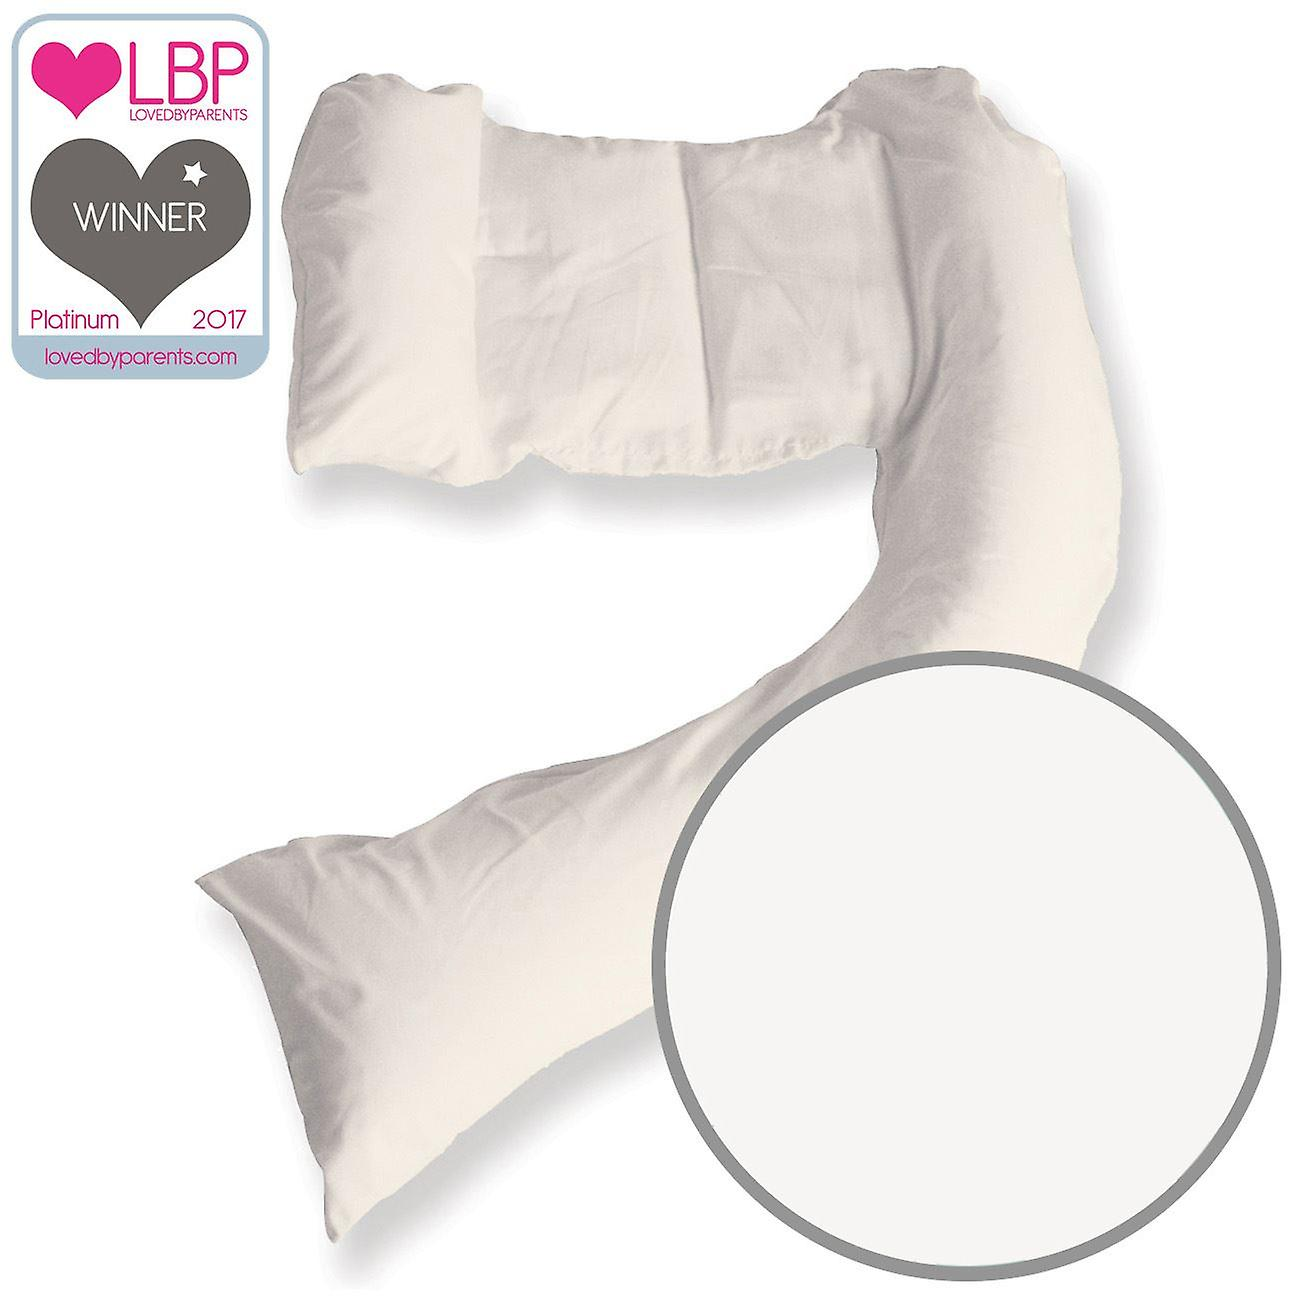 DreamGenii blanc Cotton Jersey Pregnancy Support and Feeding PilFaible